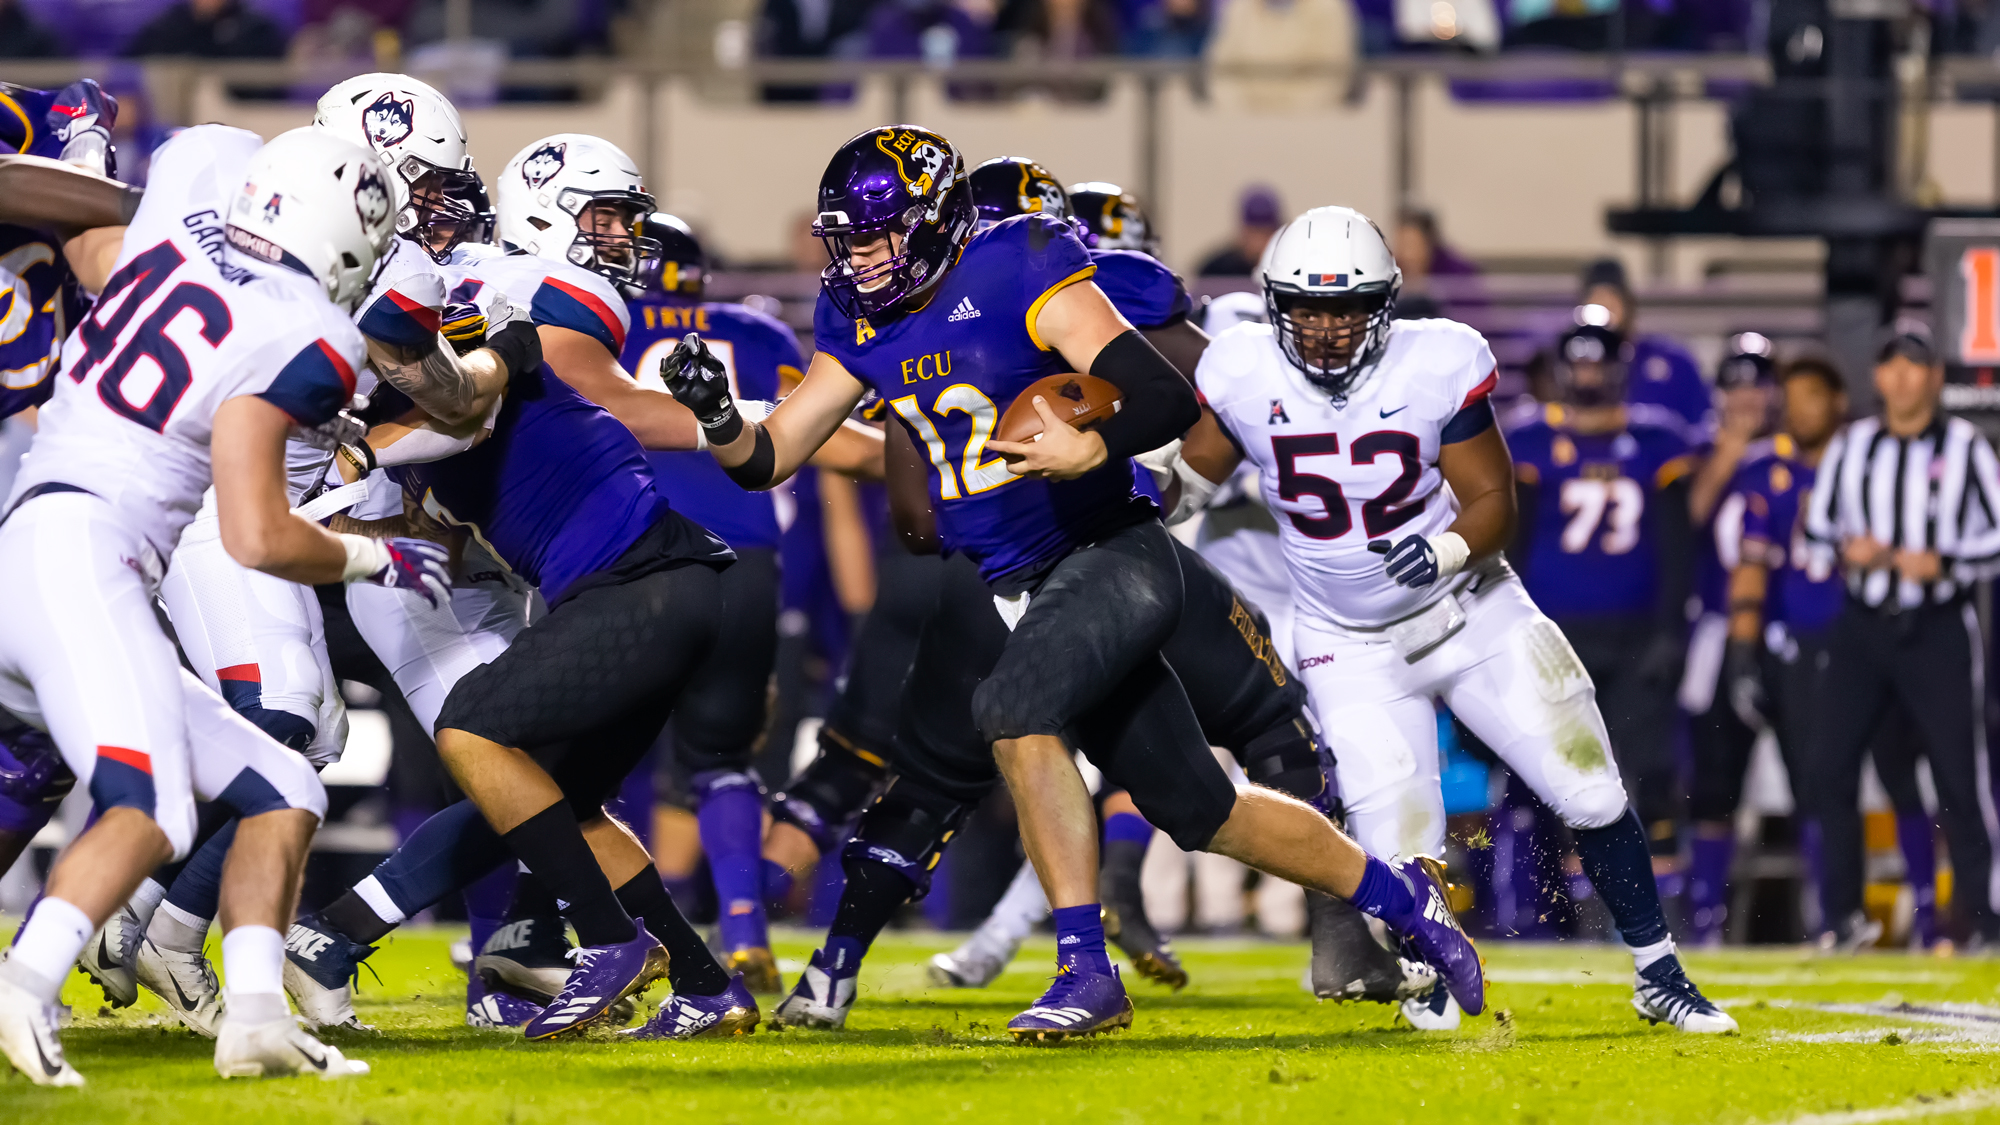 ECU snaps losing streak with O and D